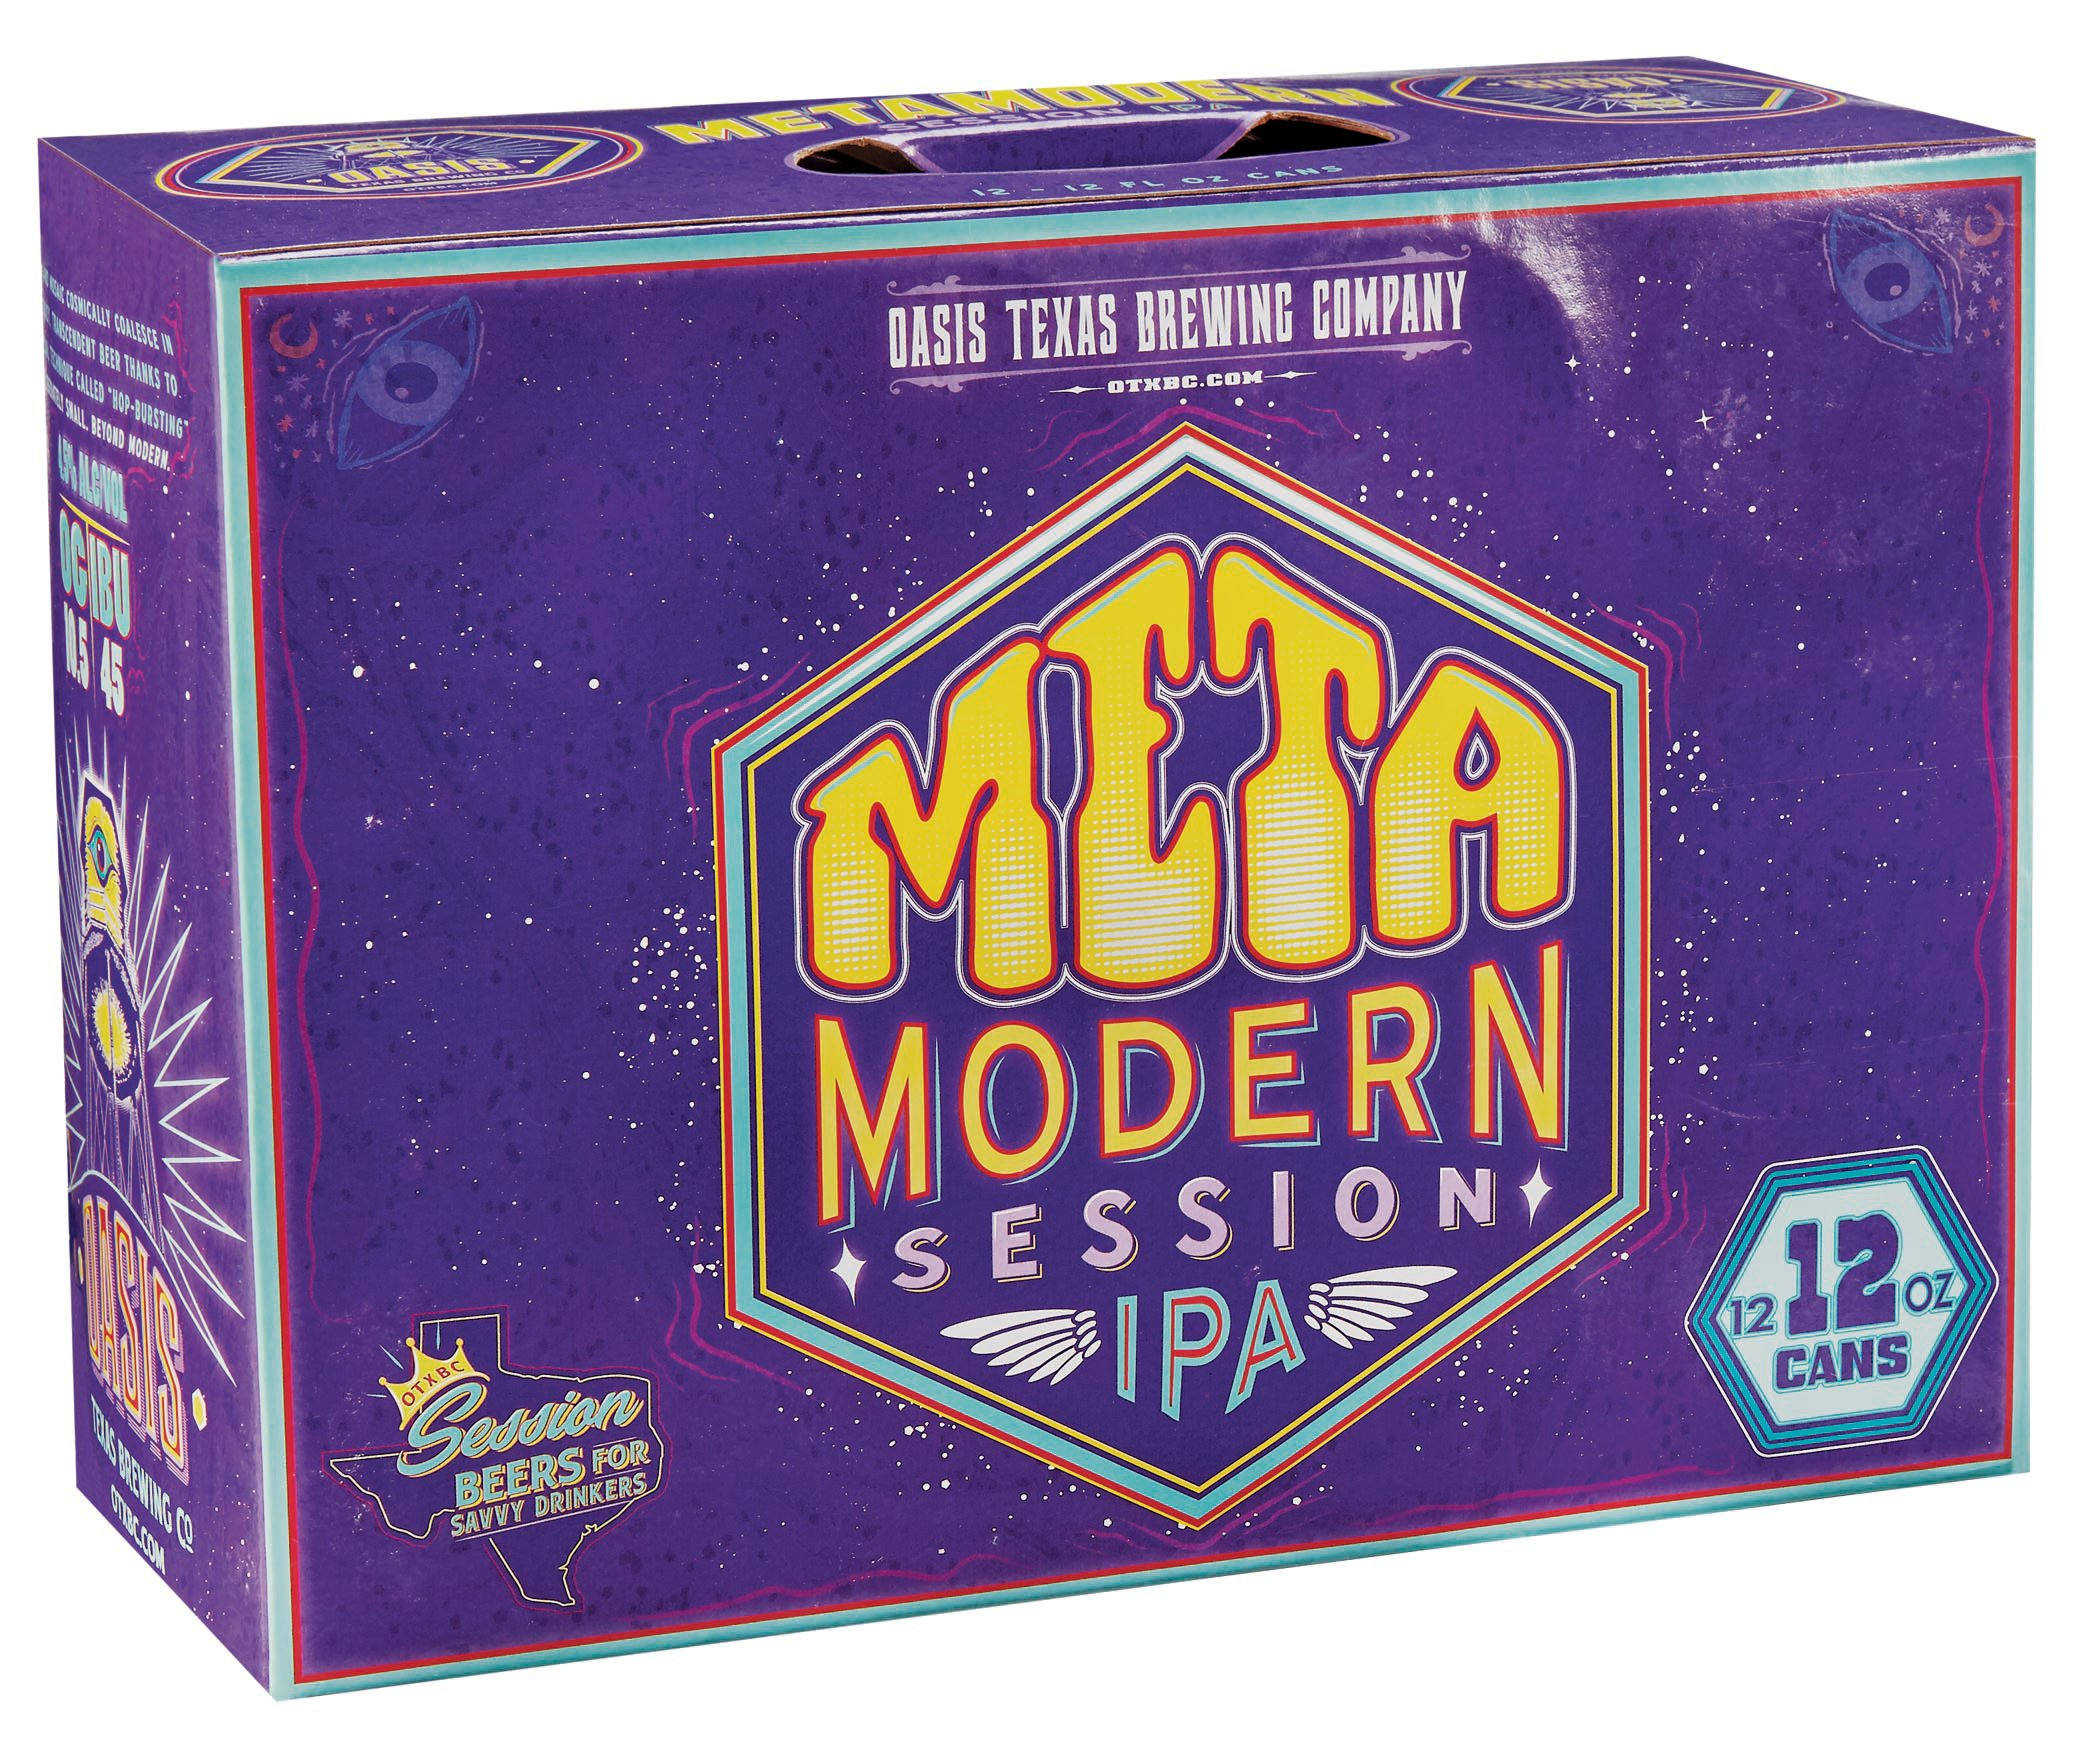 oasis texas metamodern session ipa 12 oz shop craft beer at heb